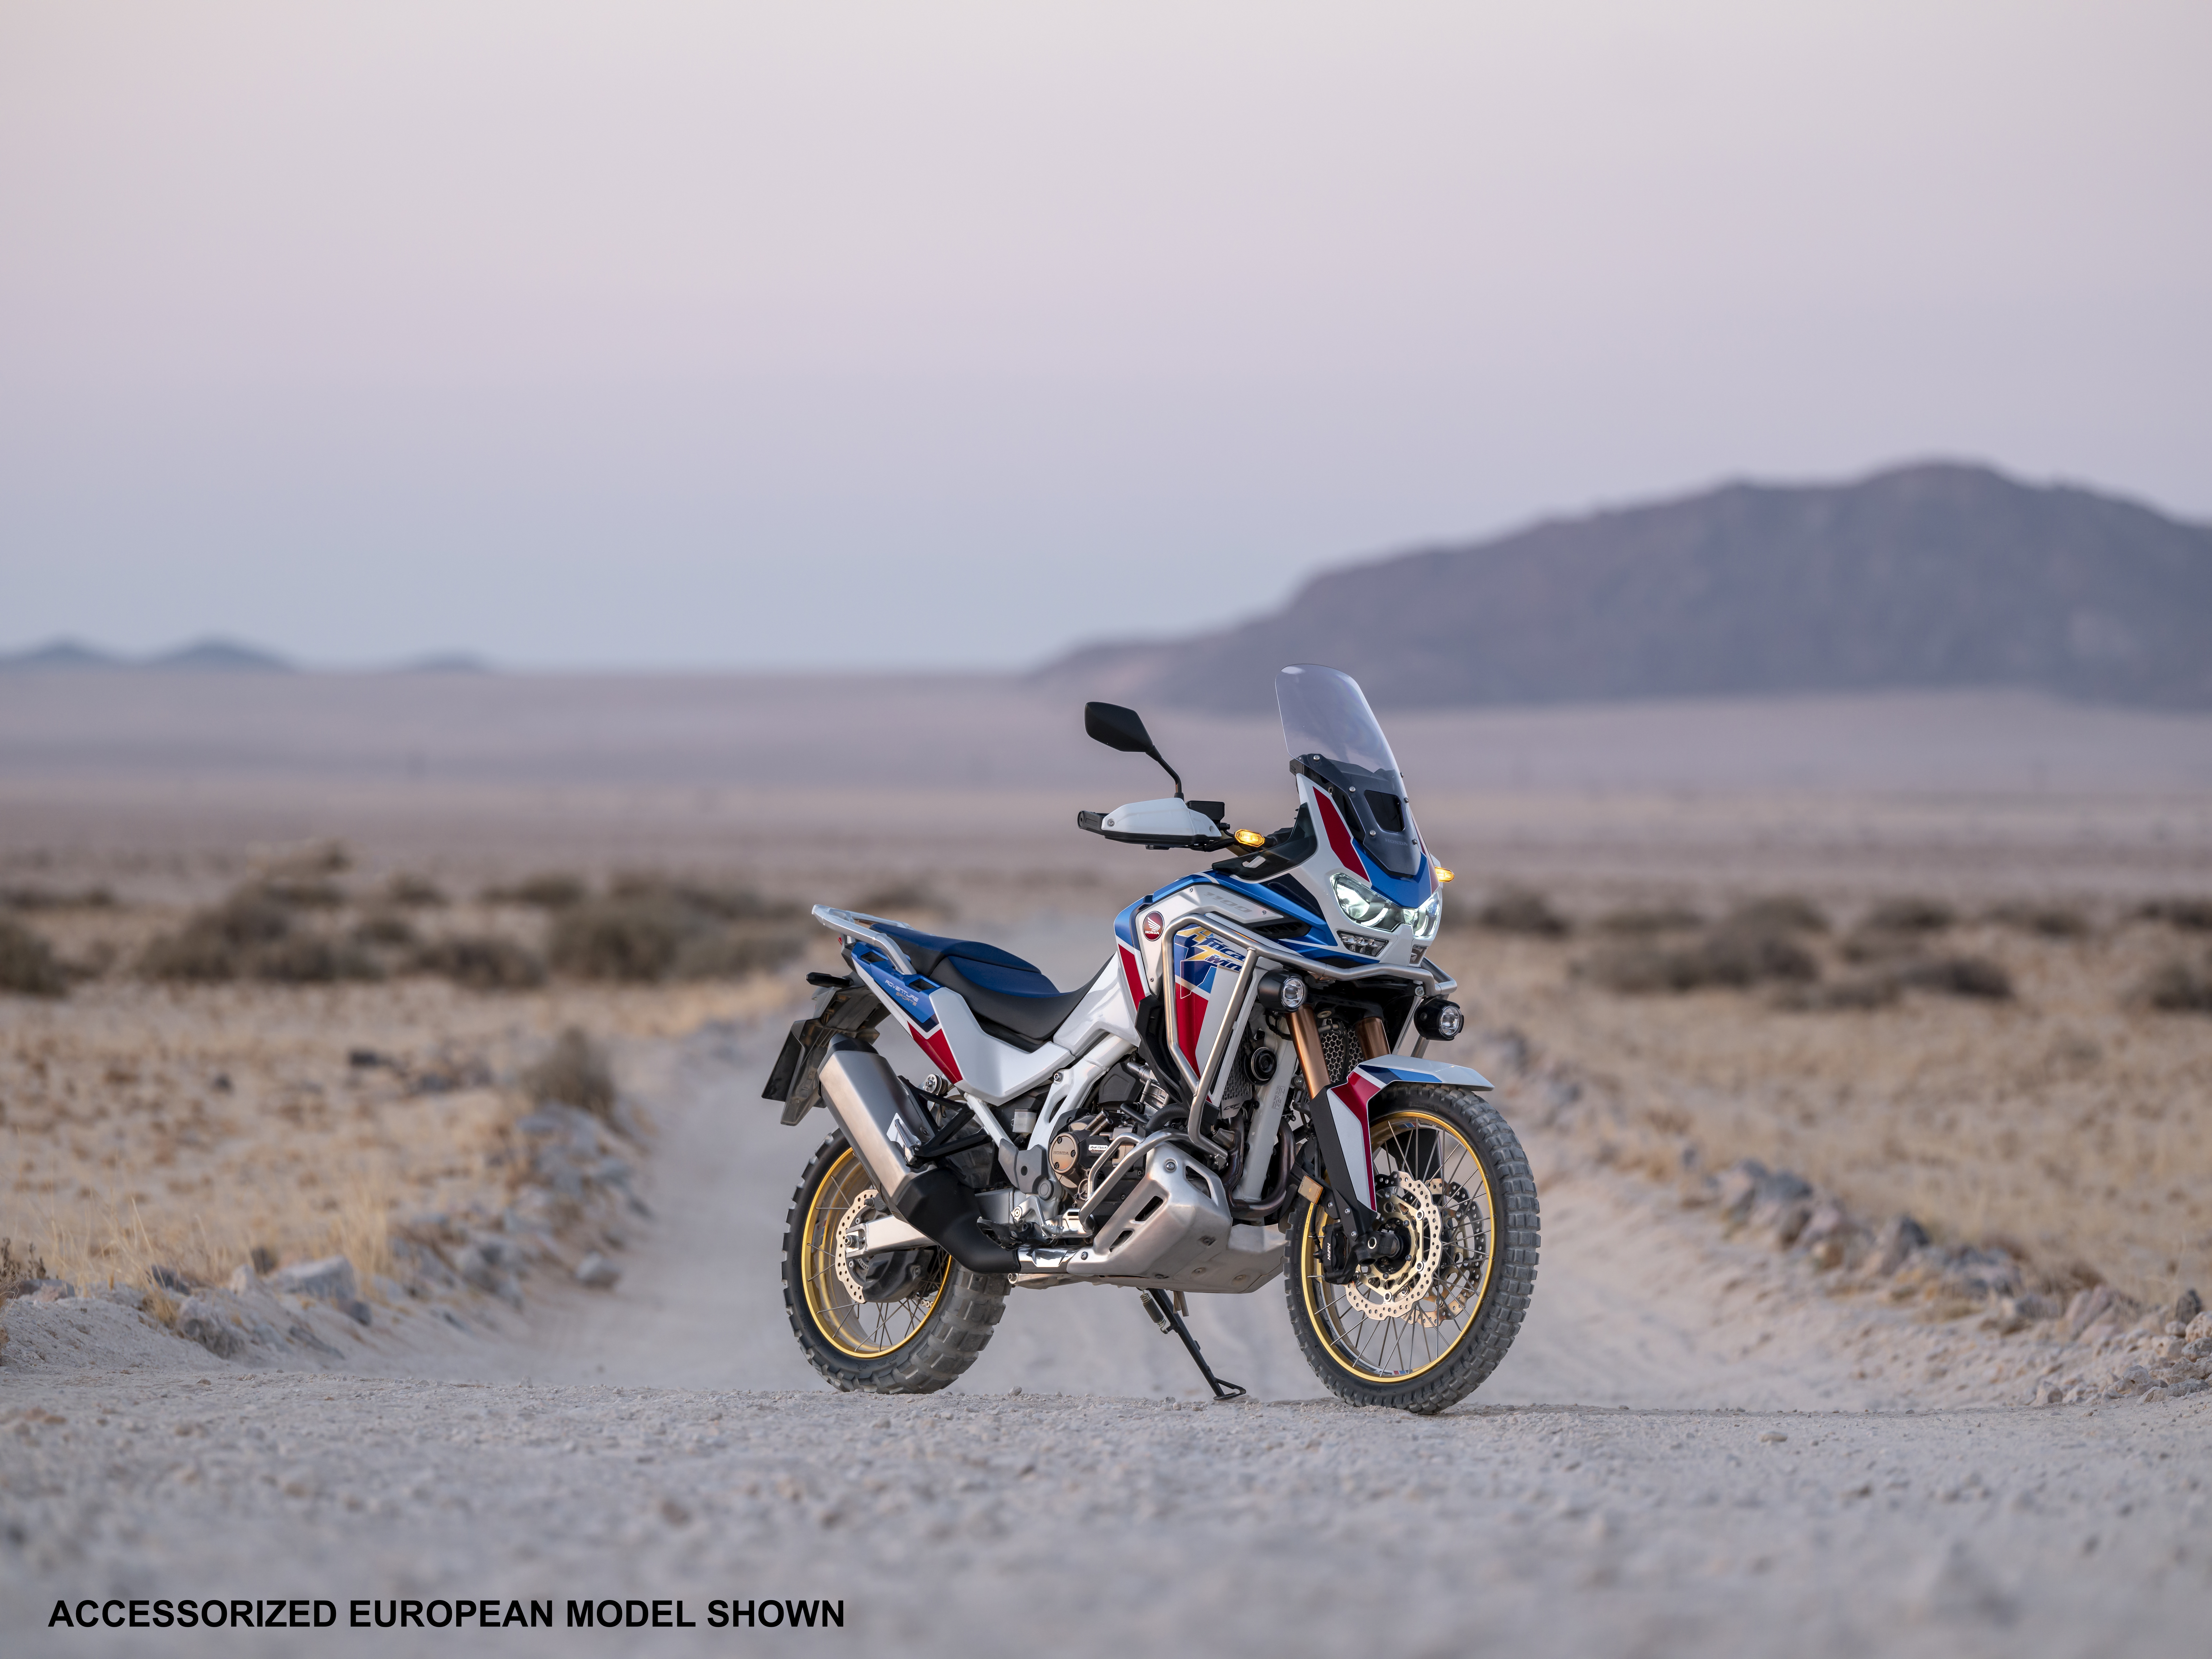 2020 Honda Crf1100 Africa Twin First Look Revzilla